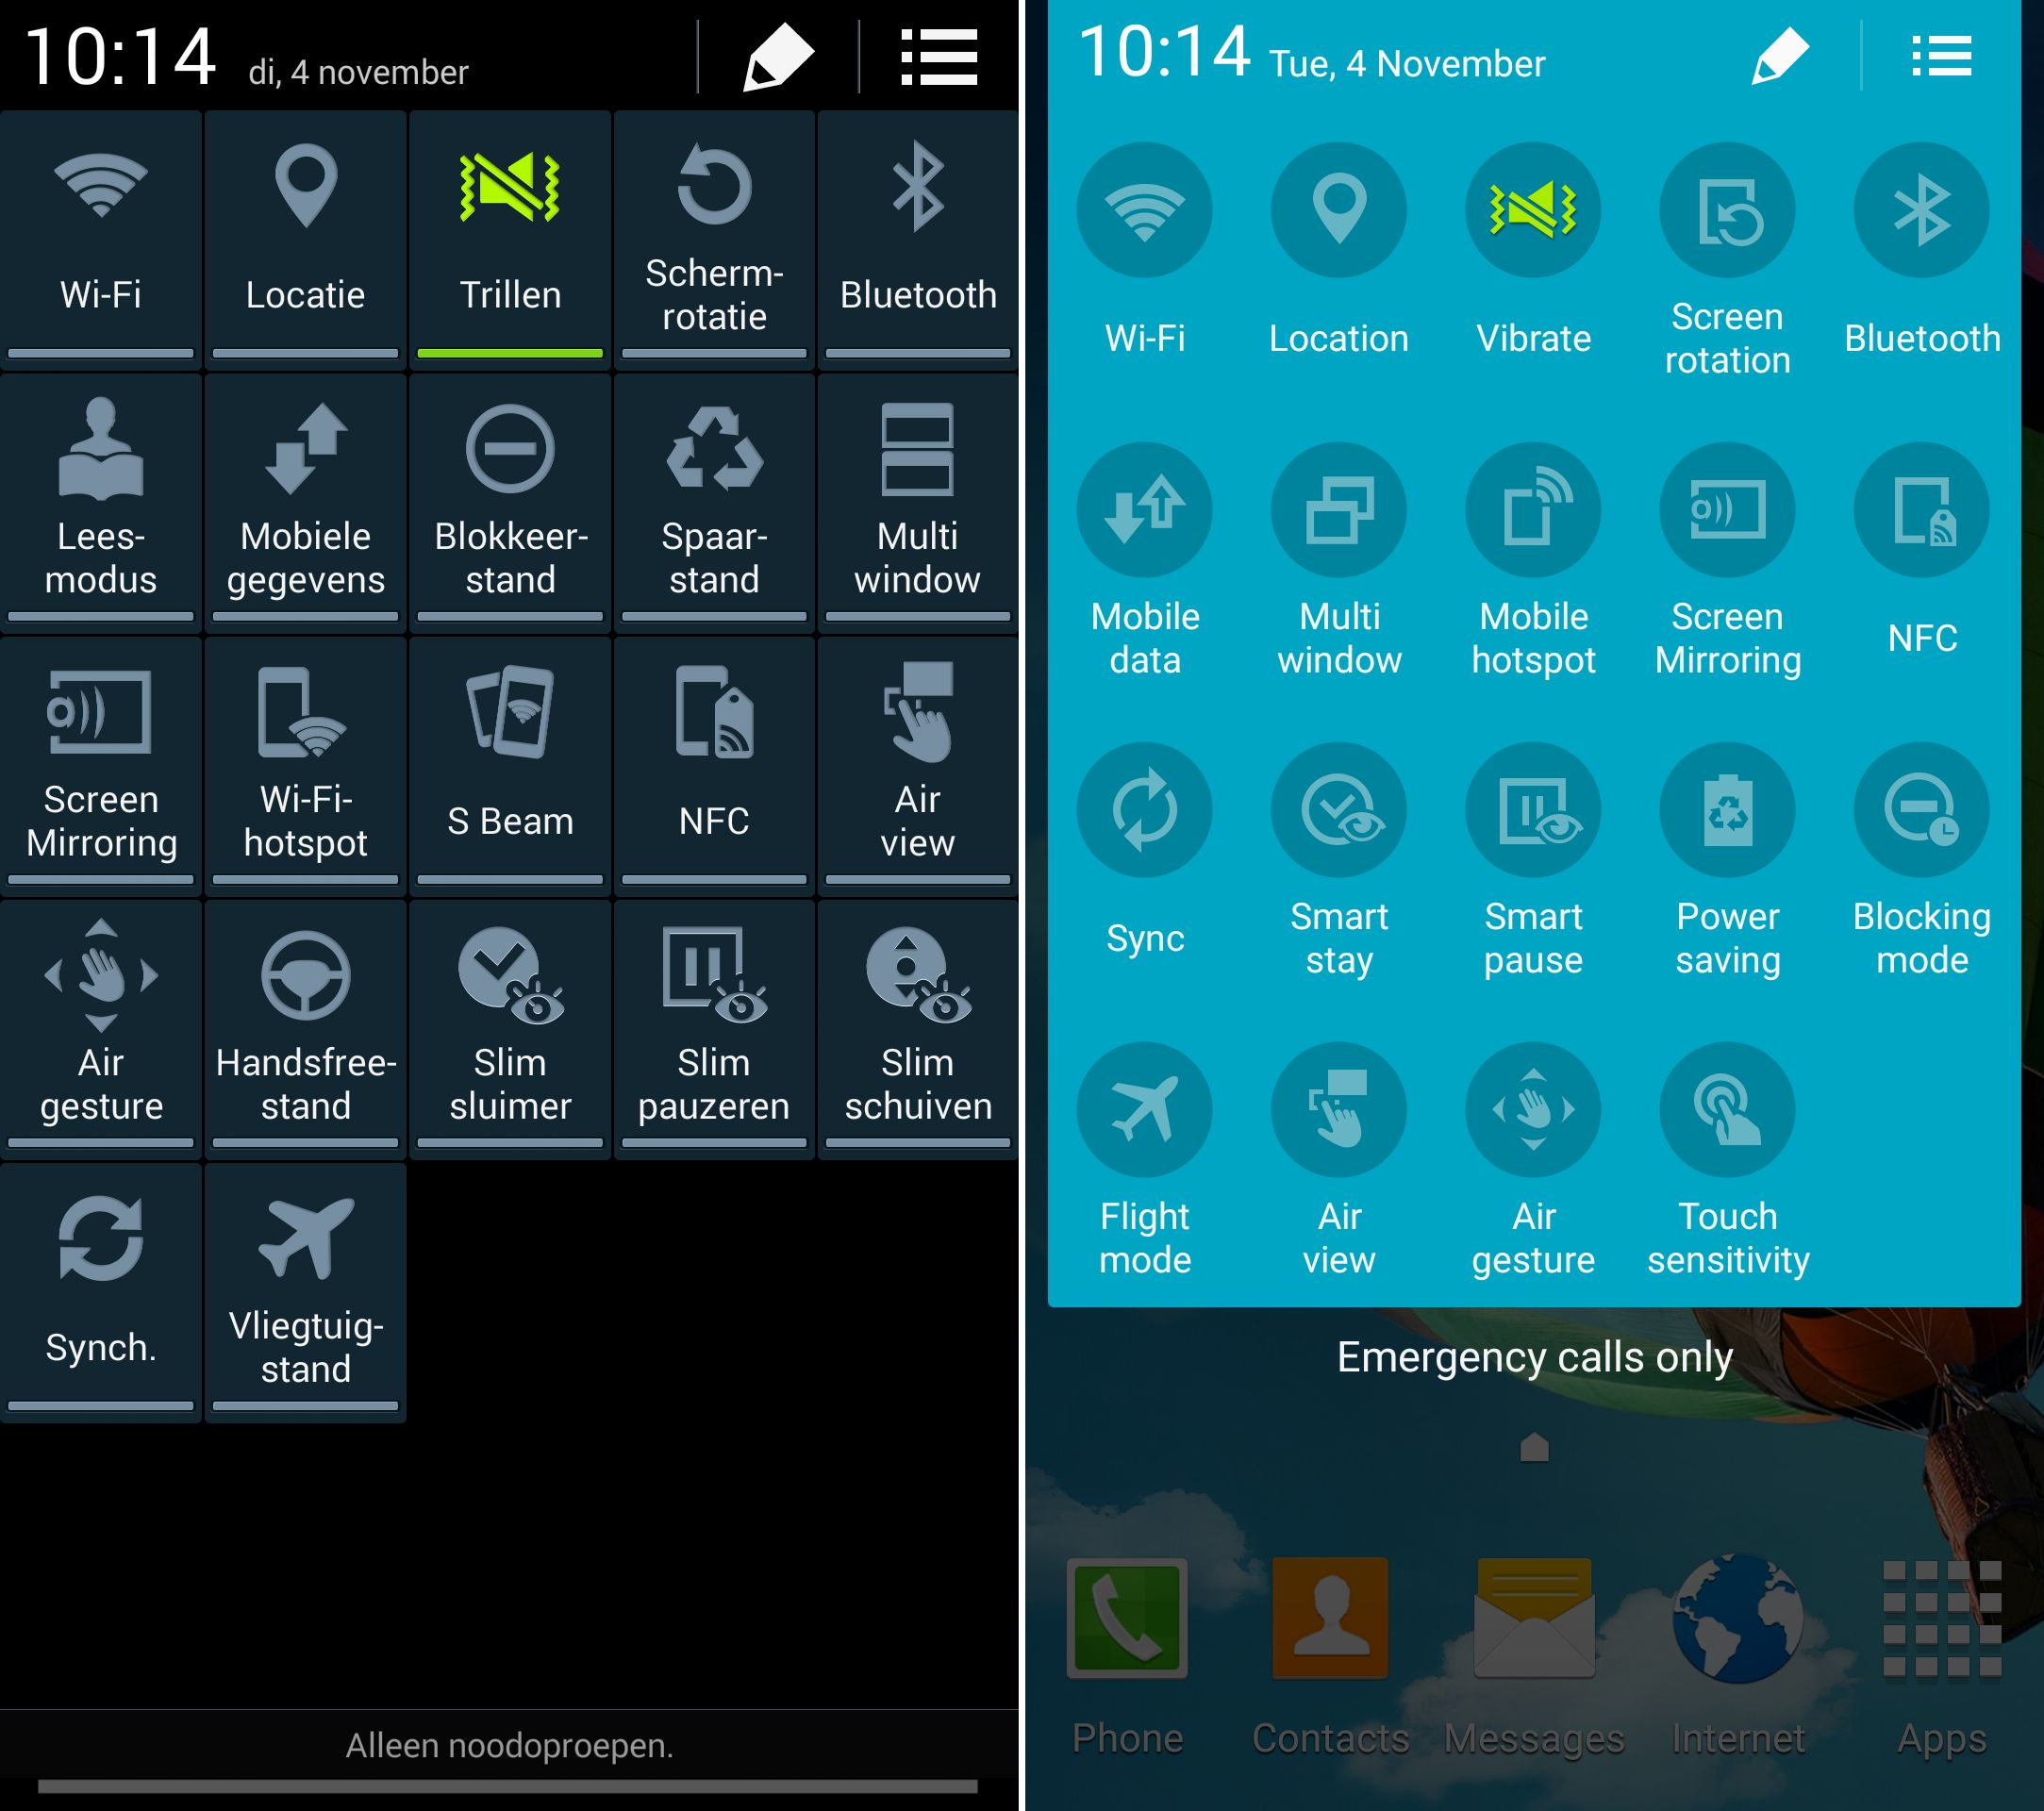 Android 5.0 Lollipop Leaks For Sprint Galaxy S5